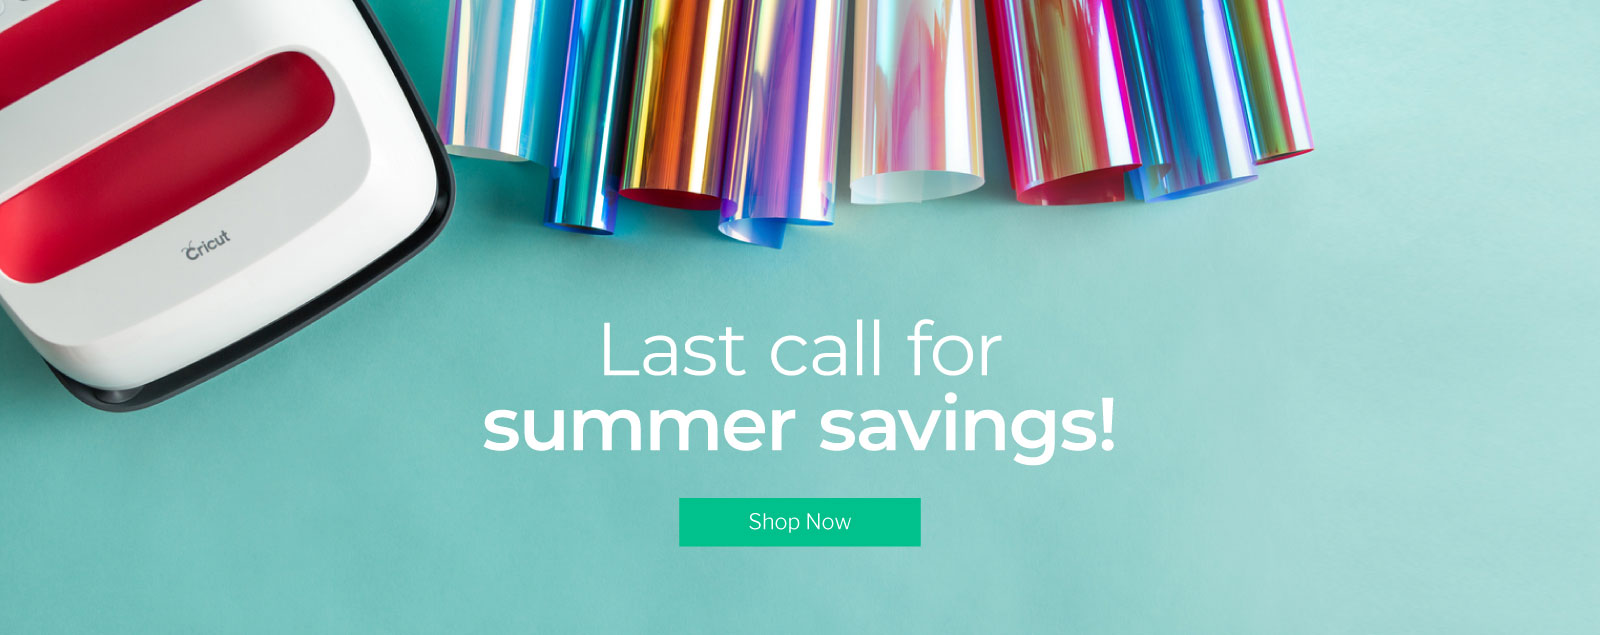 Last call for summer savings!